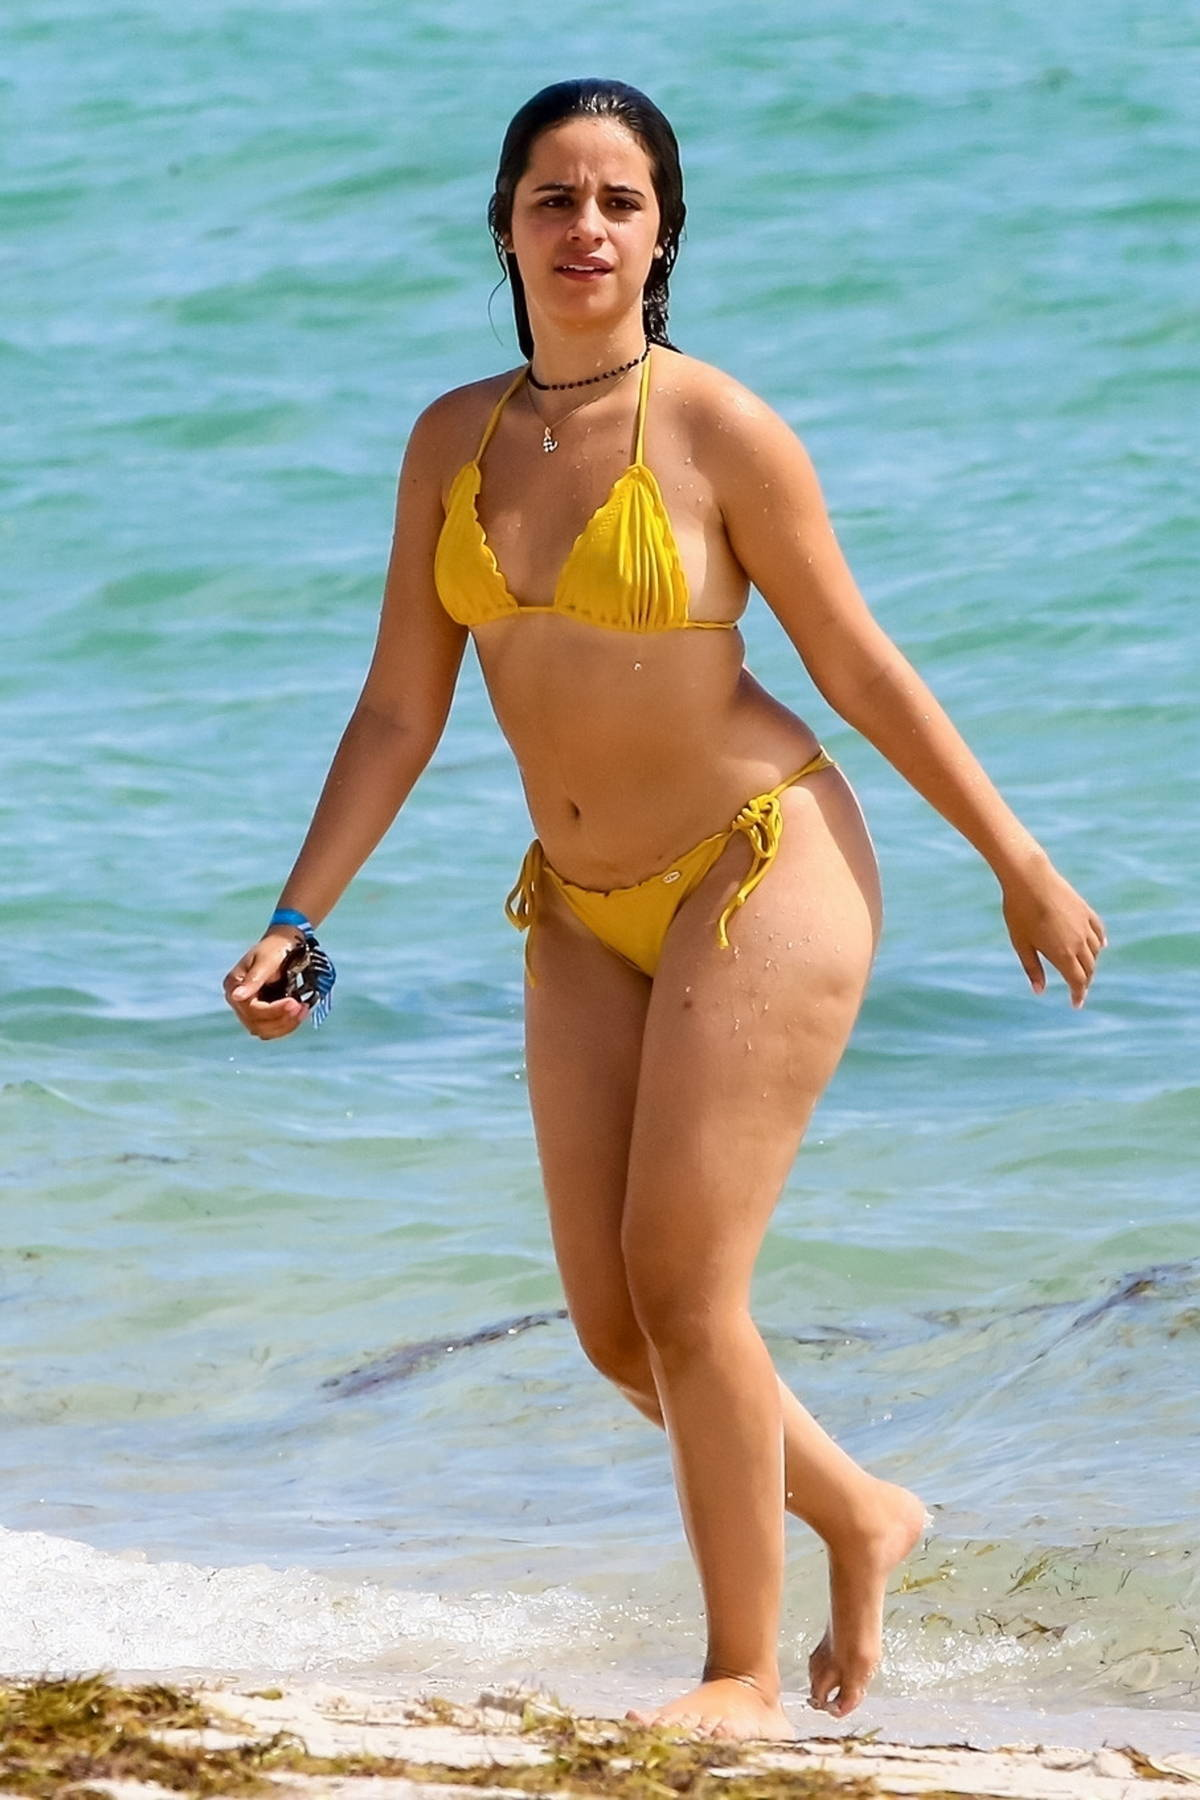 Camila Cabello flaunts her curves in a yellow bikini while enjoying a day at the beach in Miami, Florida